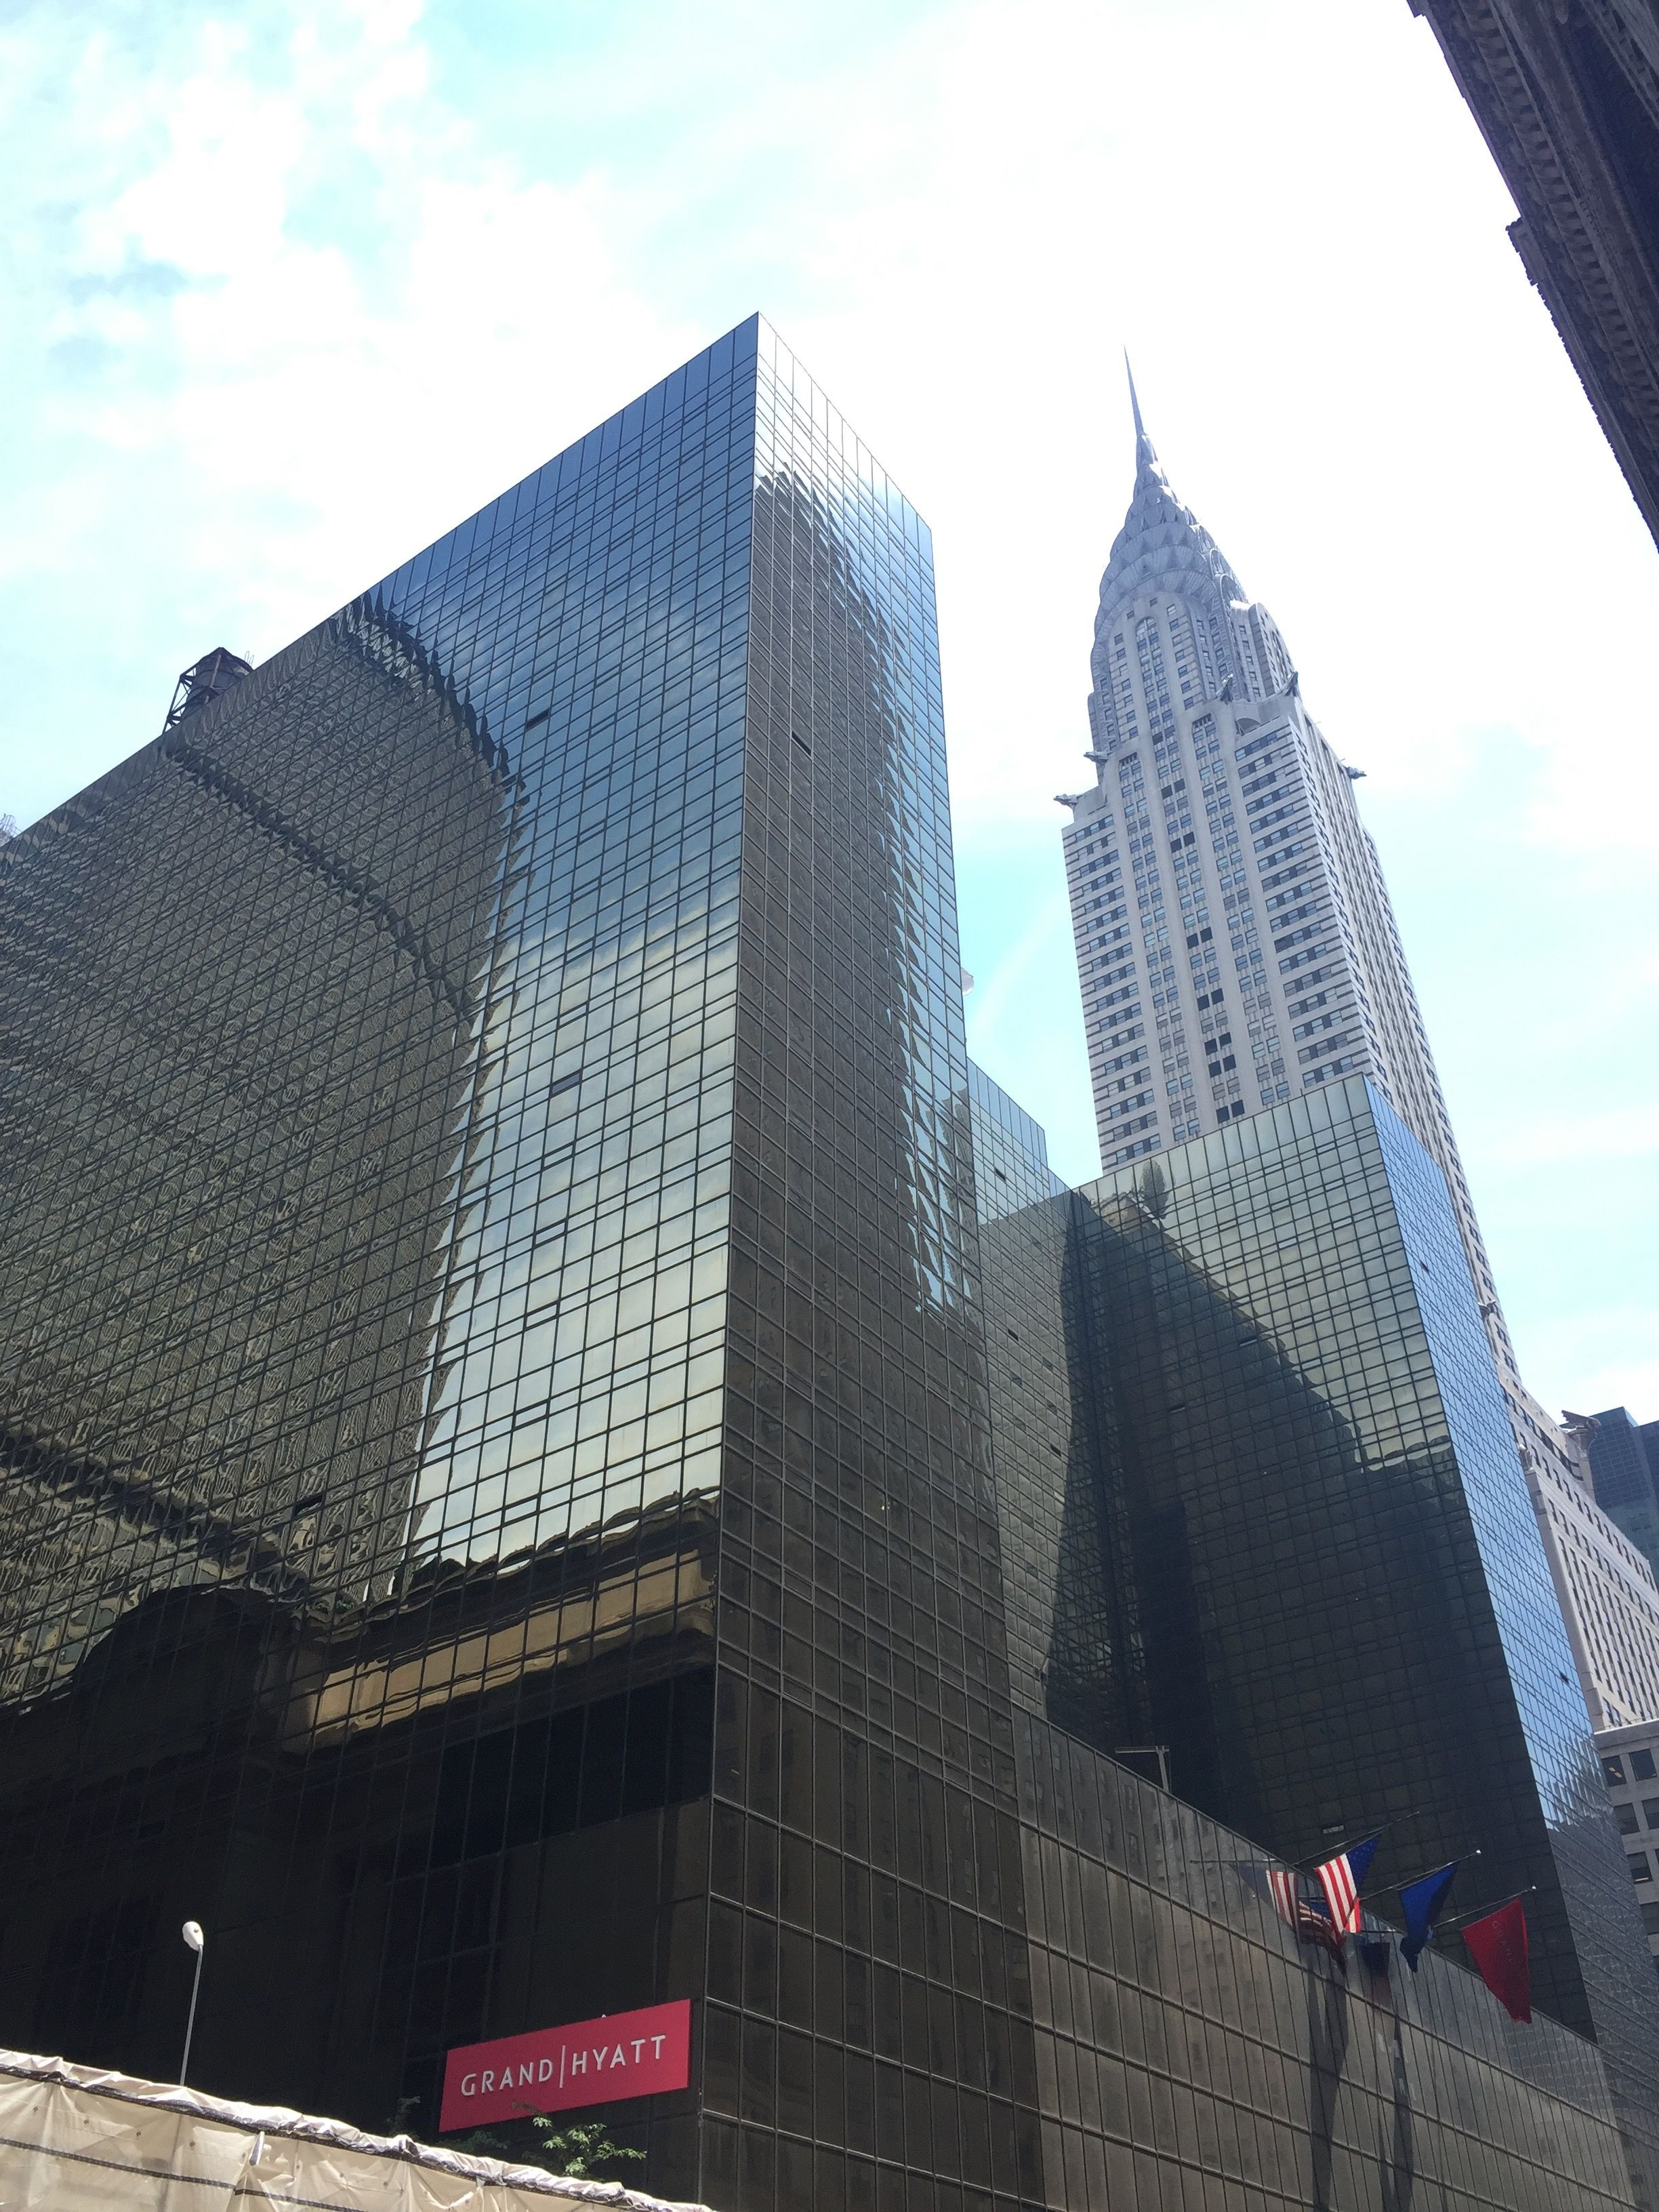 Chrysler Building, New York City #chryslerbuilding #newyork see more at http://studentroomsabroad.com